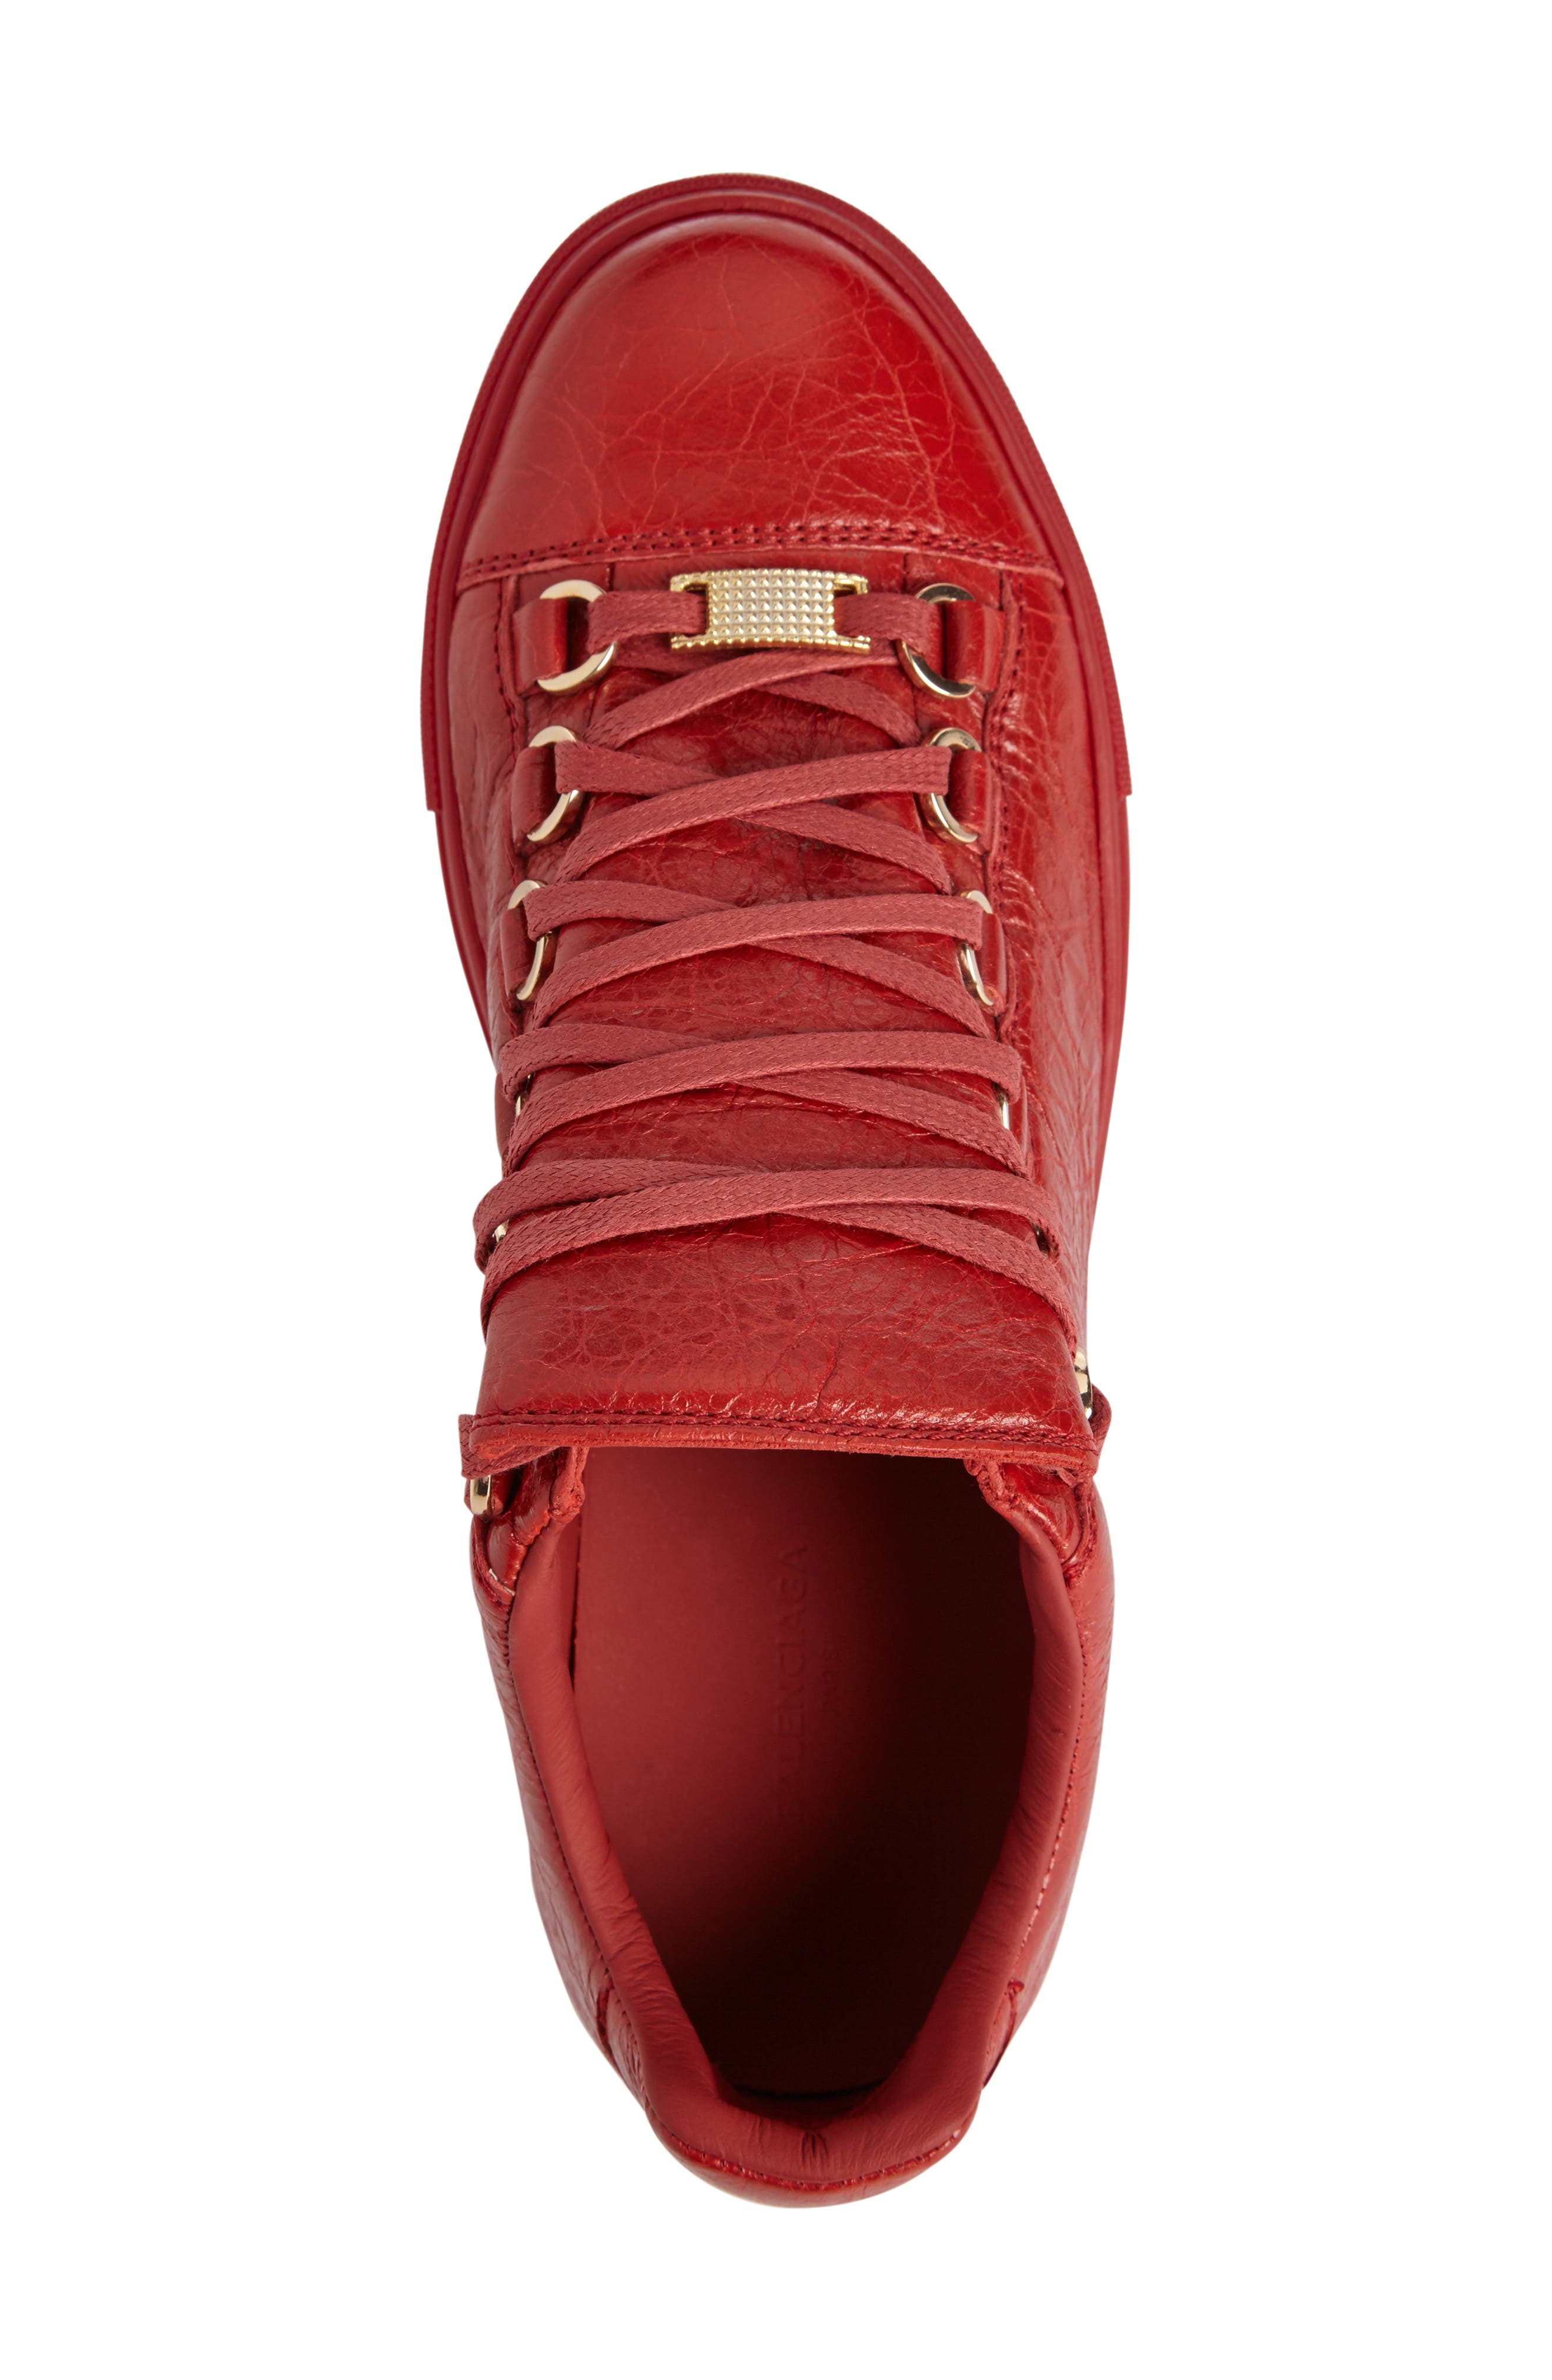 Low Top Sneaker,                             Alternate thumbnail 26, color,